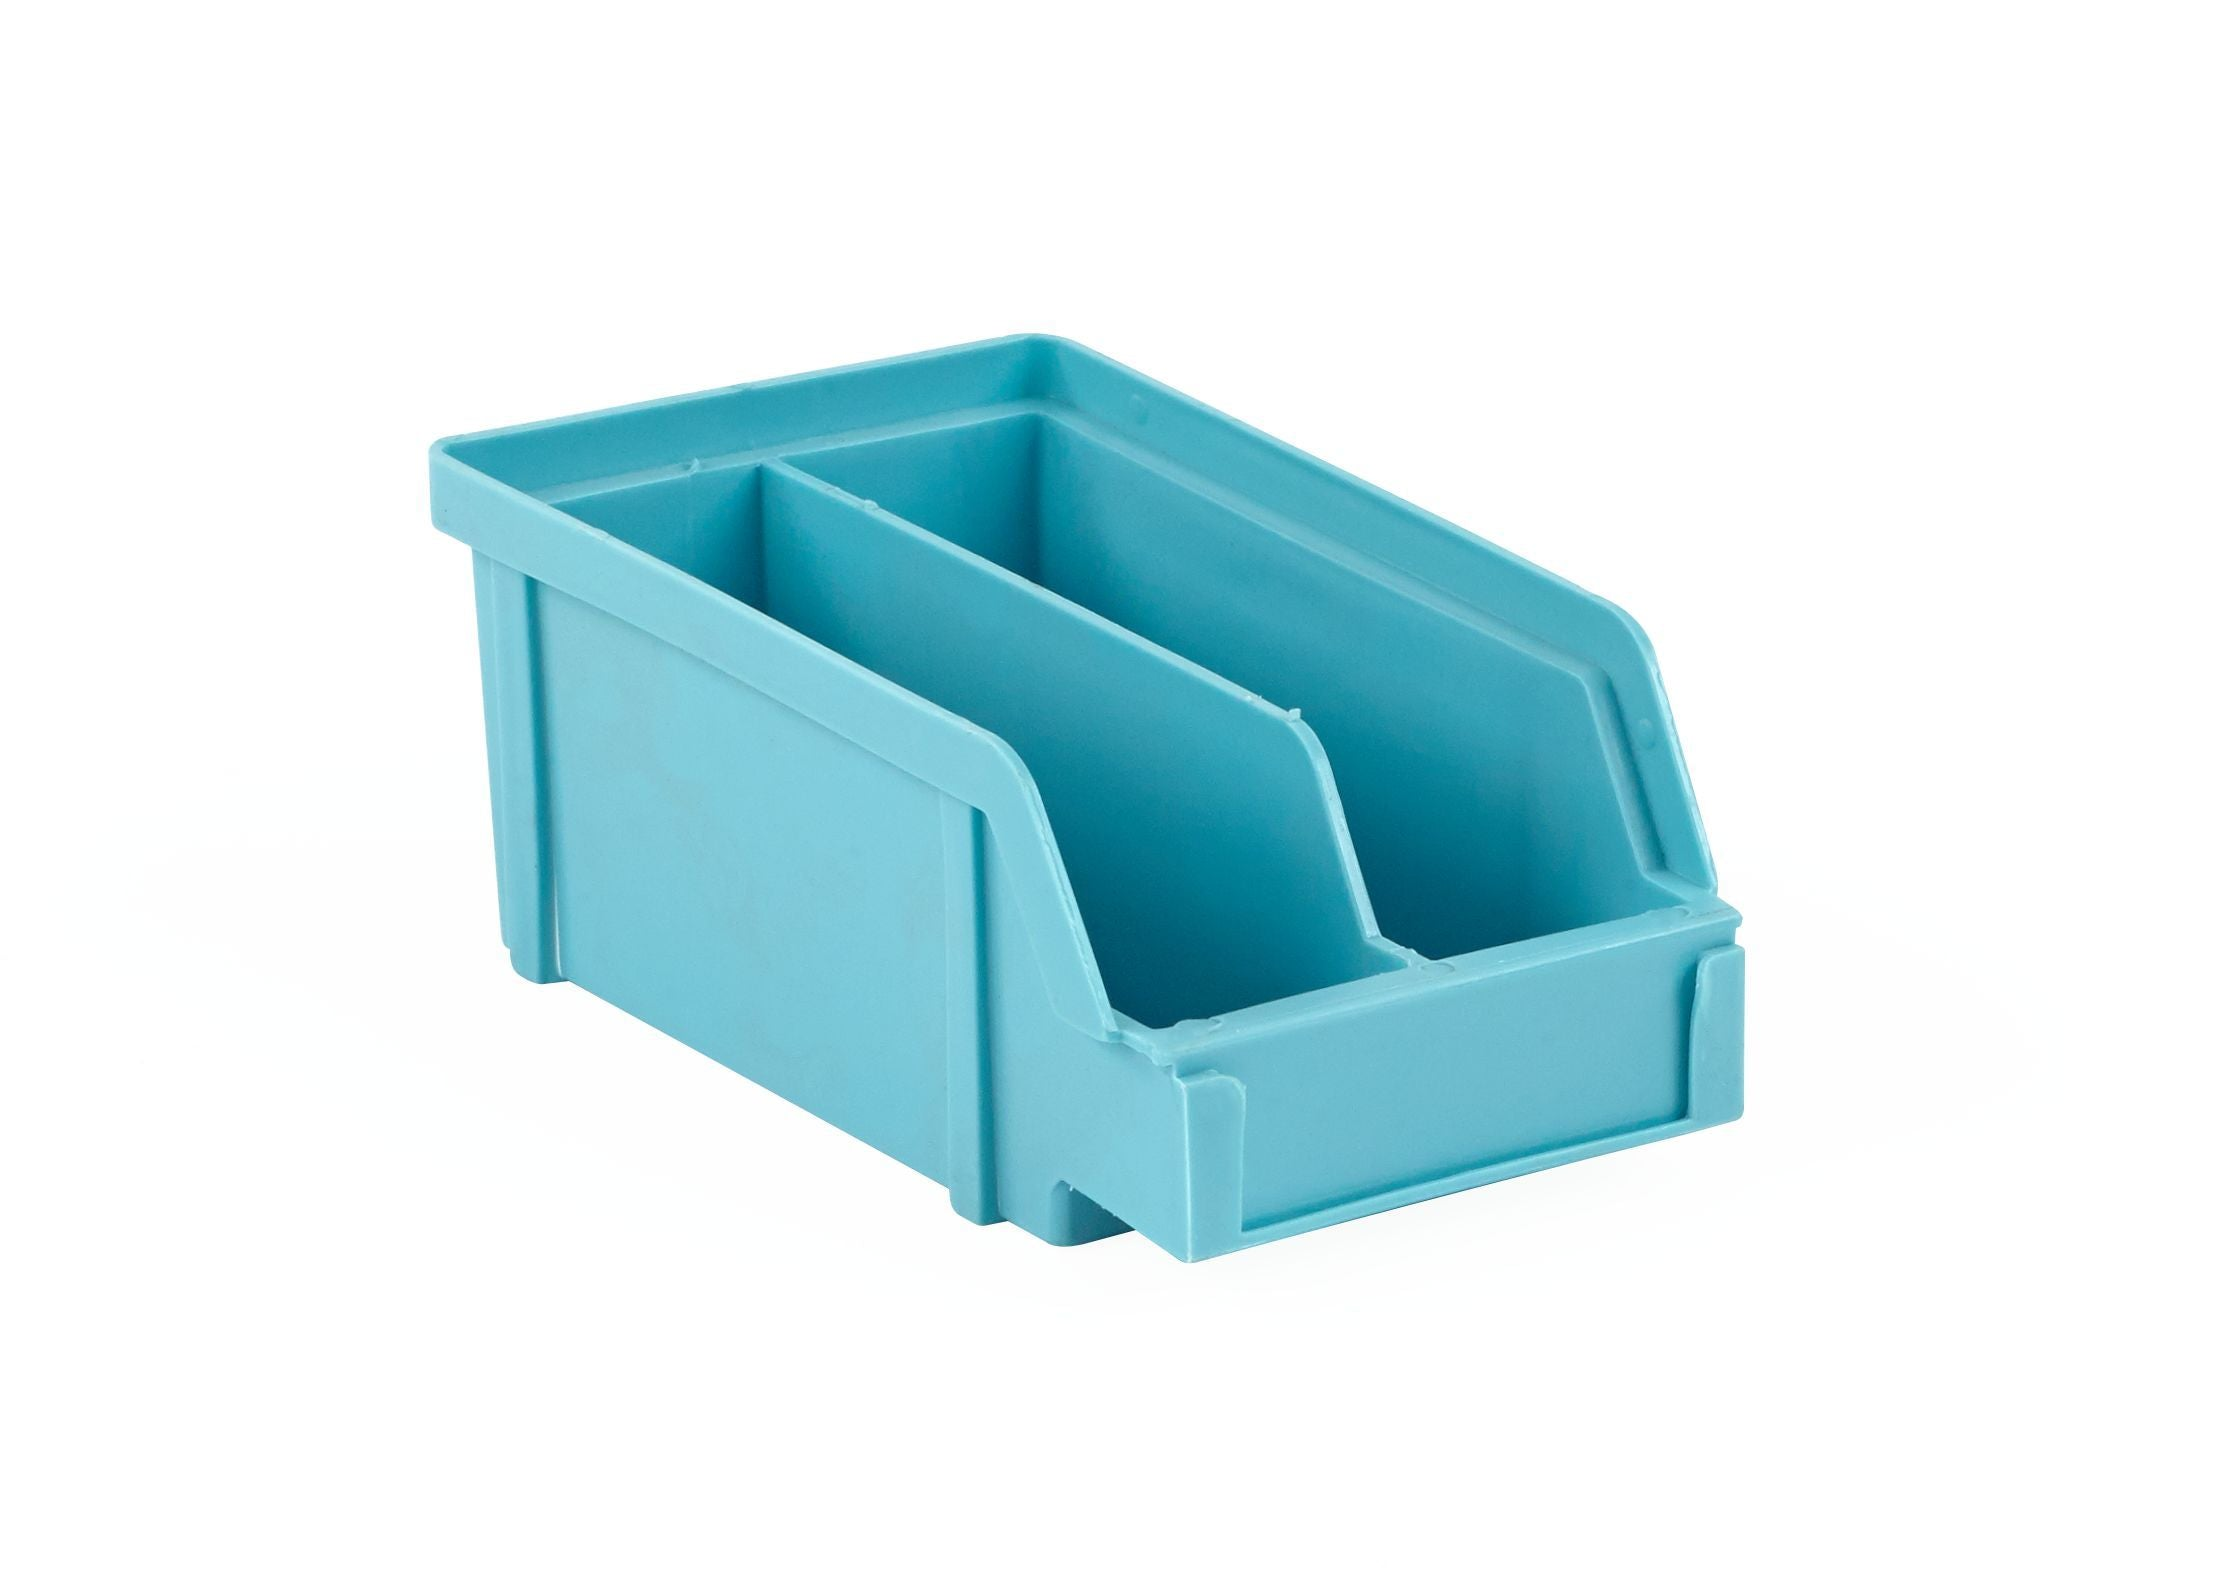 PB20-F | 7X4X3 PlastiBox Container | Pack of 24